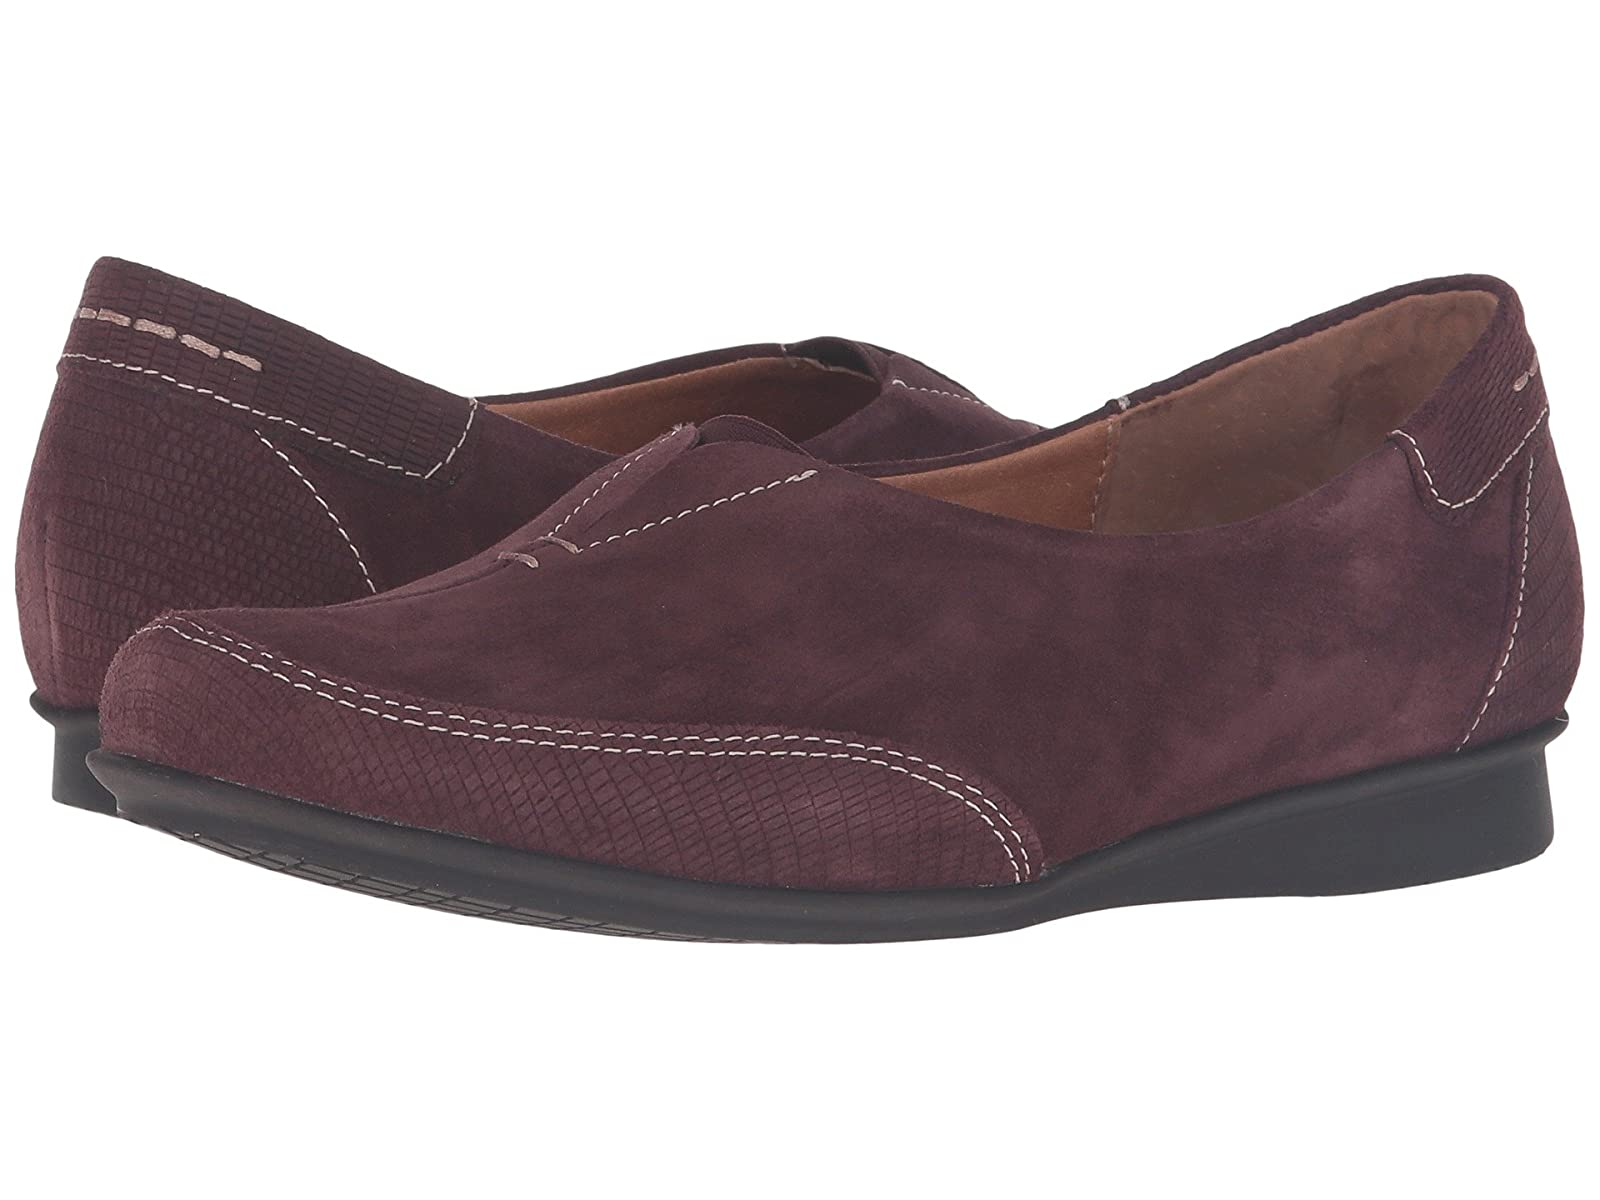 Taos Footwear MarveyCheap and distinctive eye-catching shoes